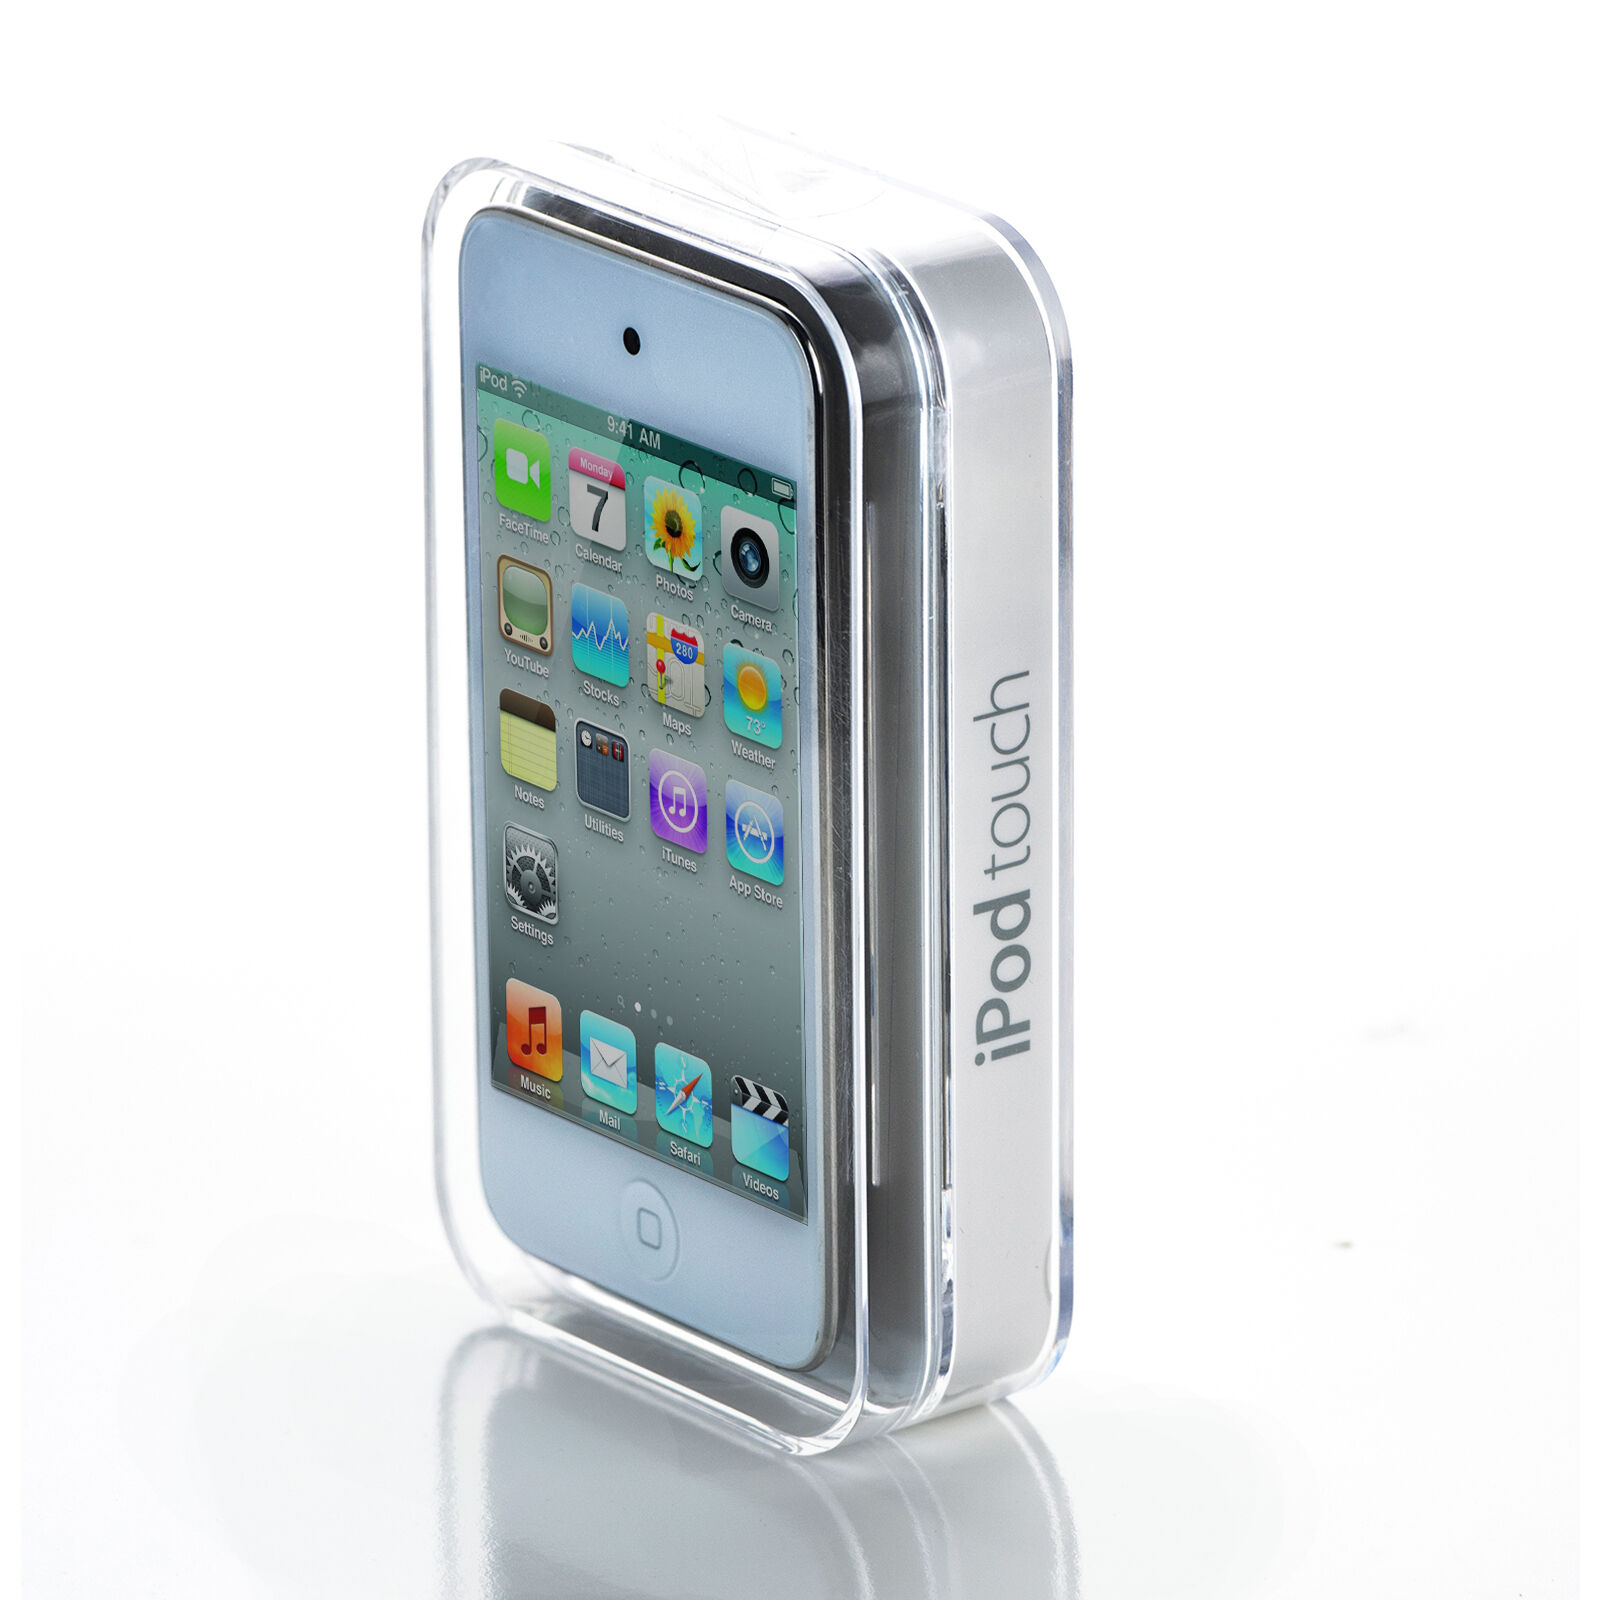 apple ipod touch 4th generation 32 gb white color mp3. Black Bedroom Furniture Sets. Home Design Ideas